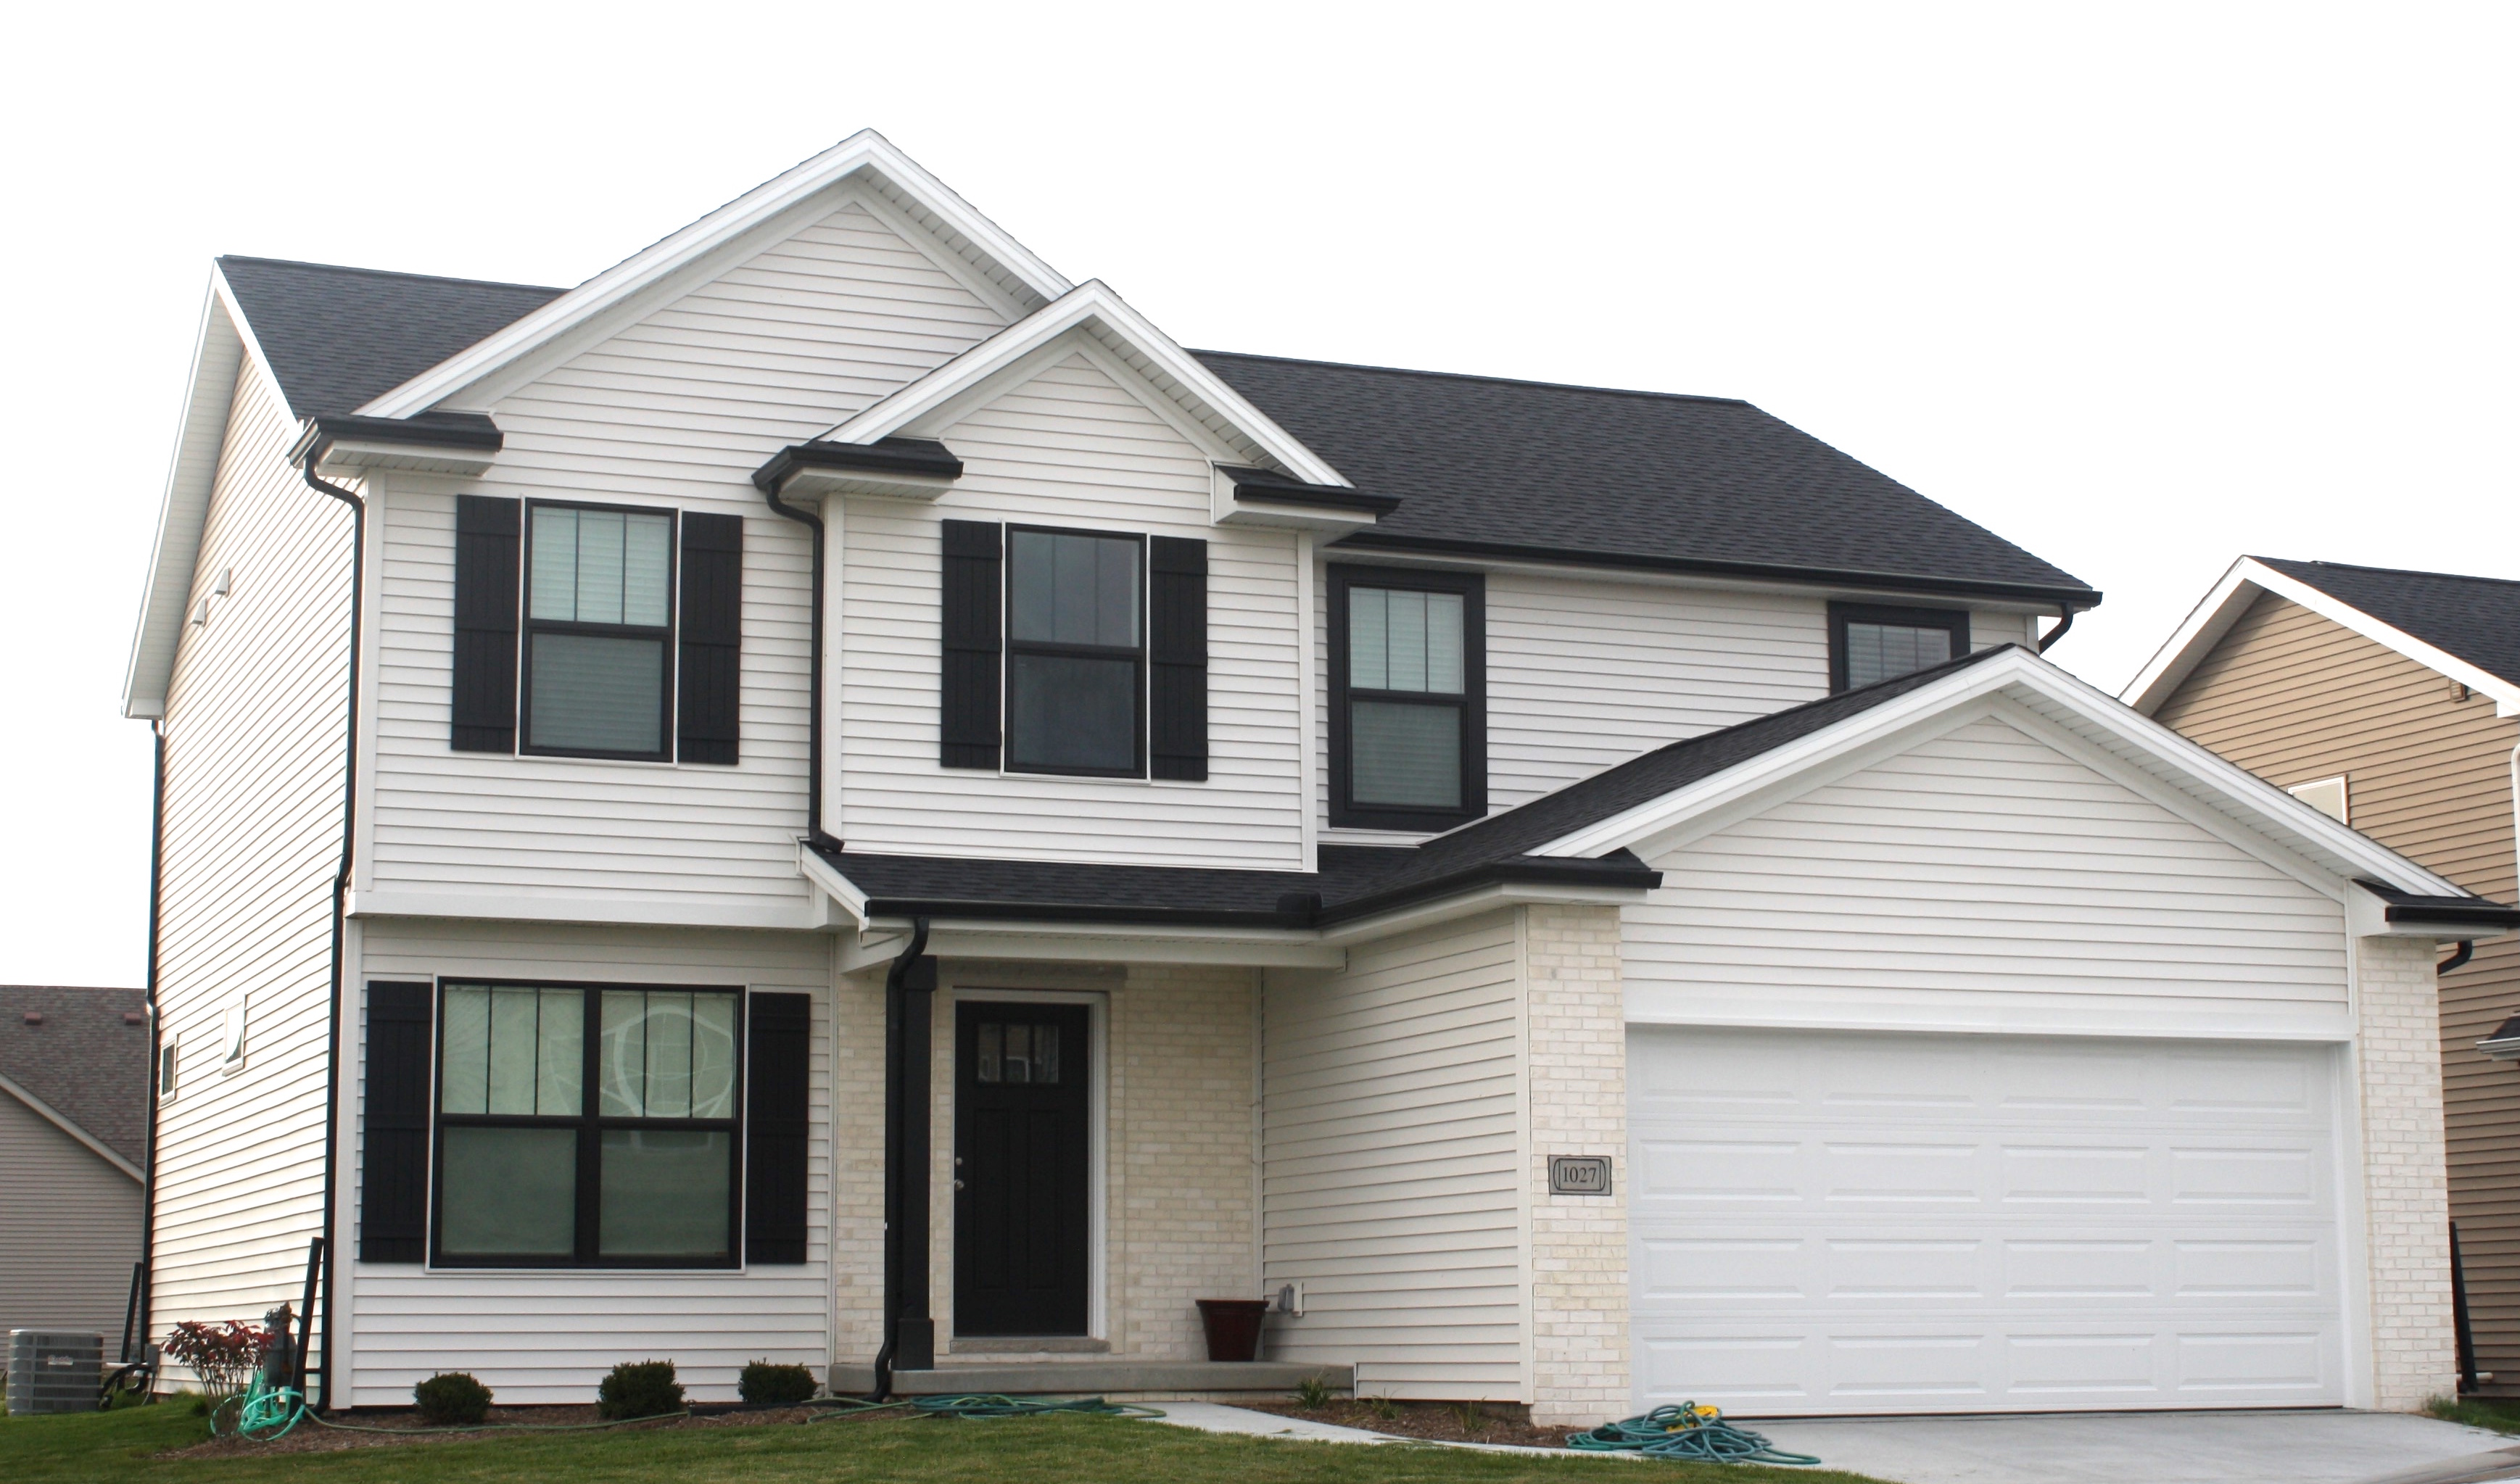 Back roof mastic linen siding white trim black gutters in bloomington il carlson exteriors inc - Black house with white trim ...